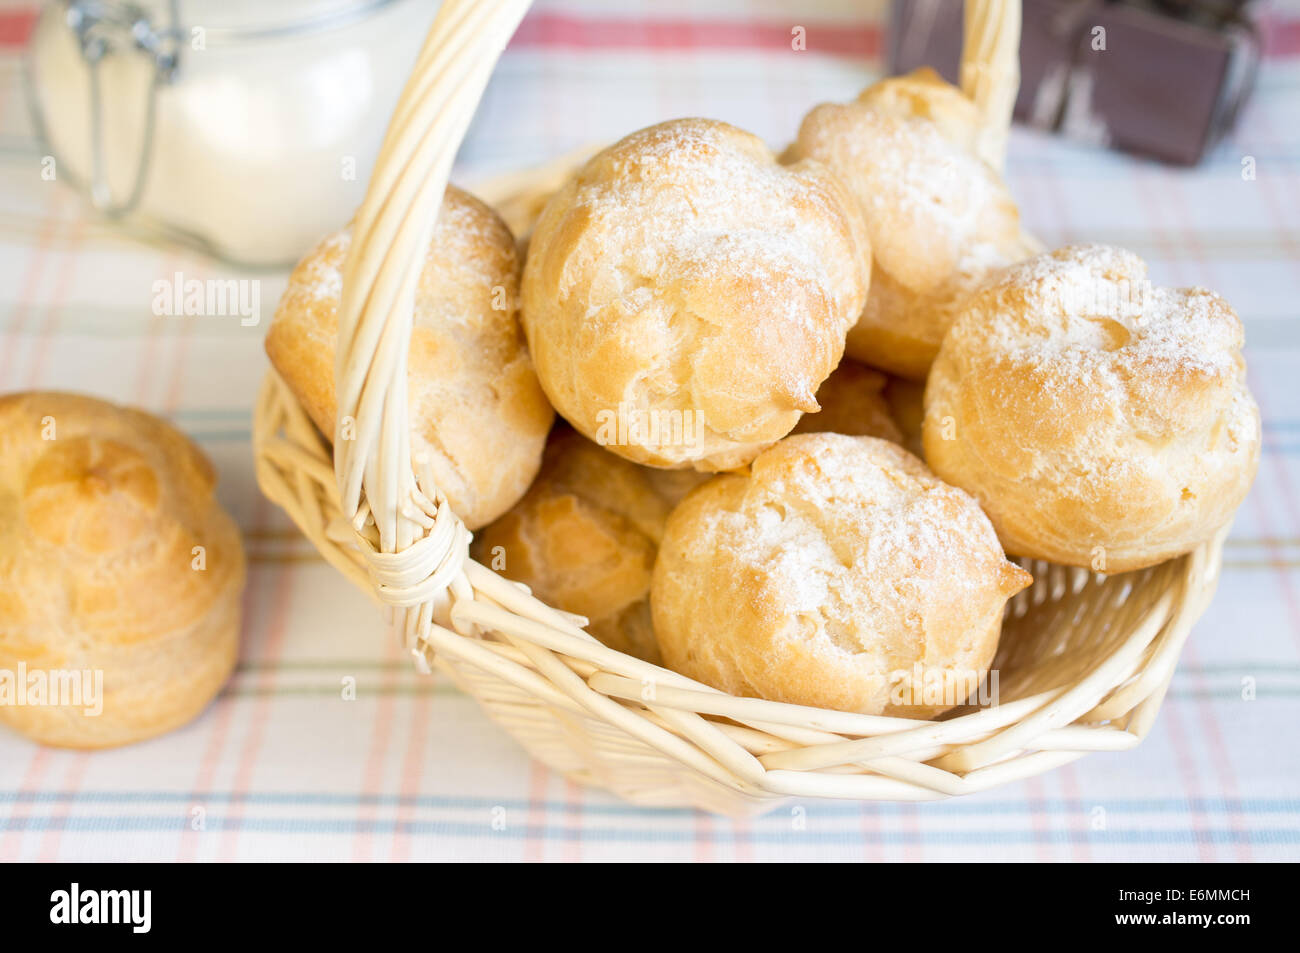 Cakes profiterole with cream in a basket - Stock Image